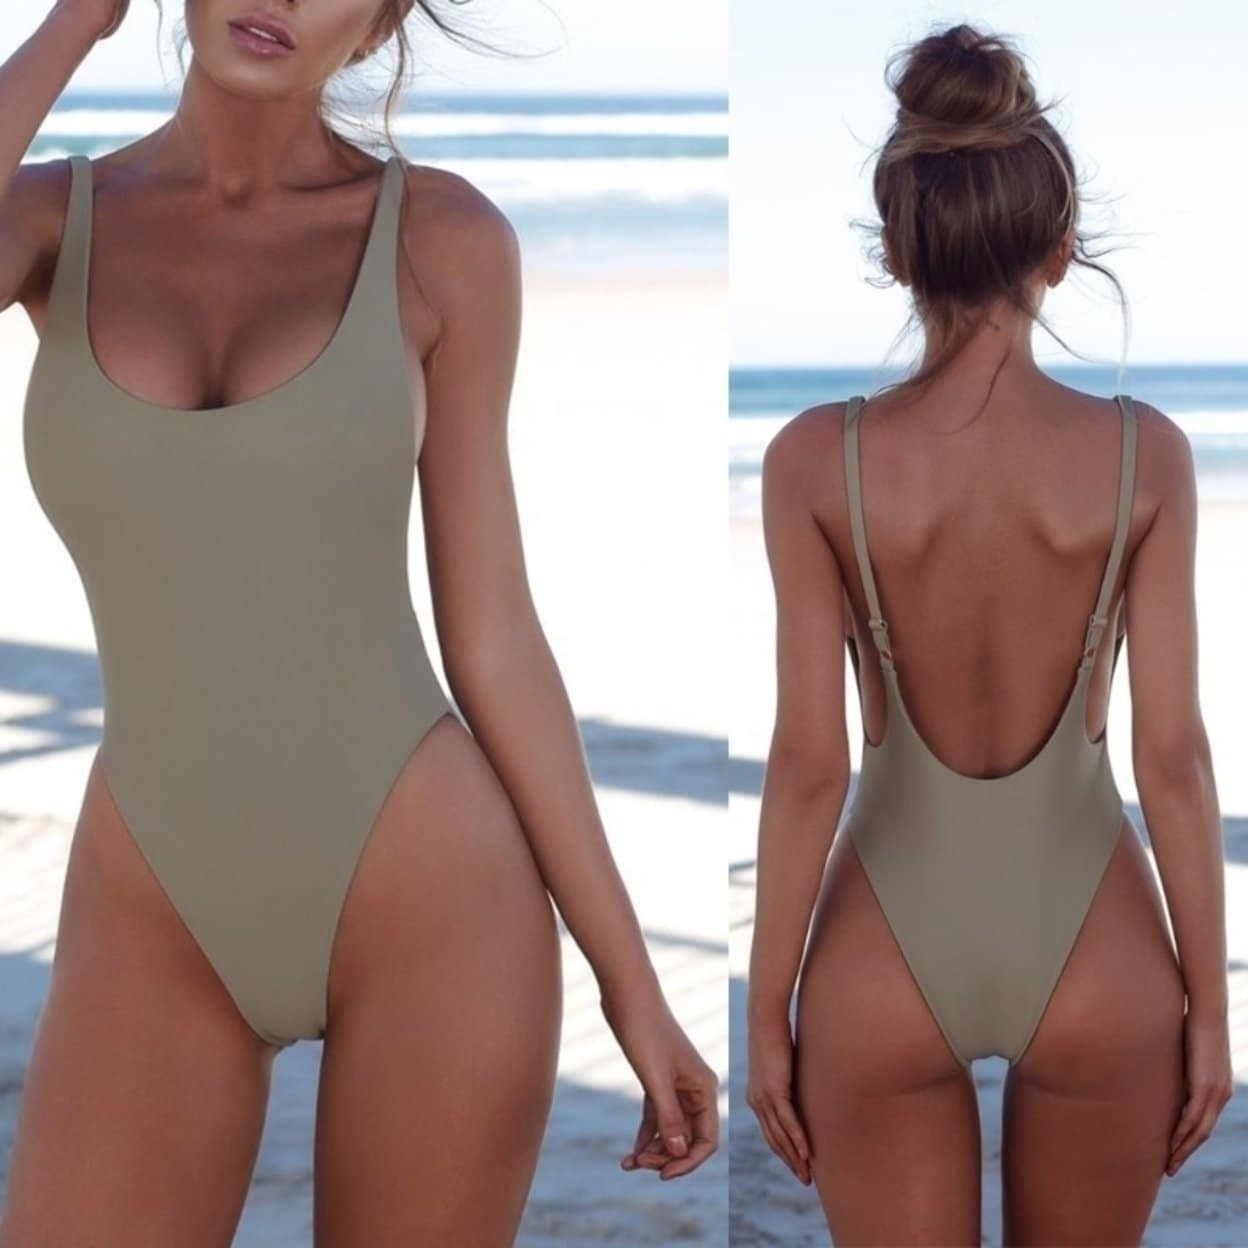 c2ad58418a1cc Shop Sexy Push Up One-piece Backless Solid Retro Triangle Swimsuit Swimwear  MOM - On Sale - Free Shipping On Orders Over $45 - Overstock - 27517101